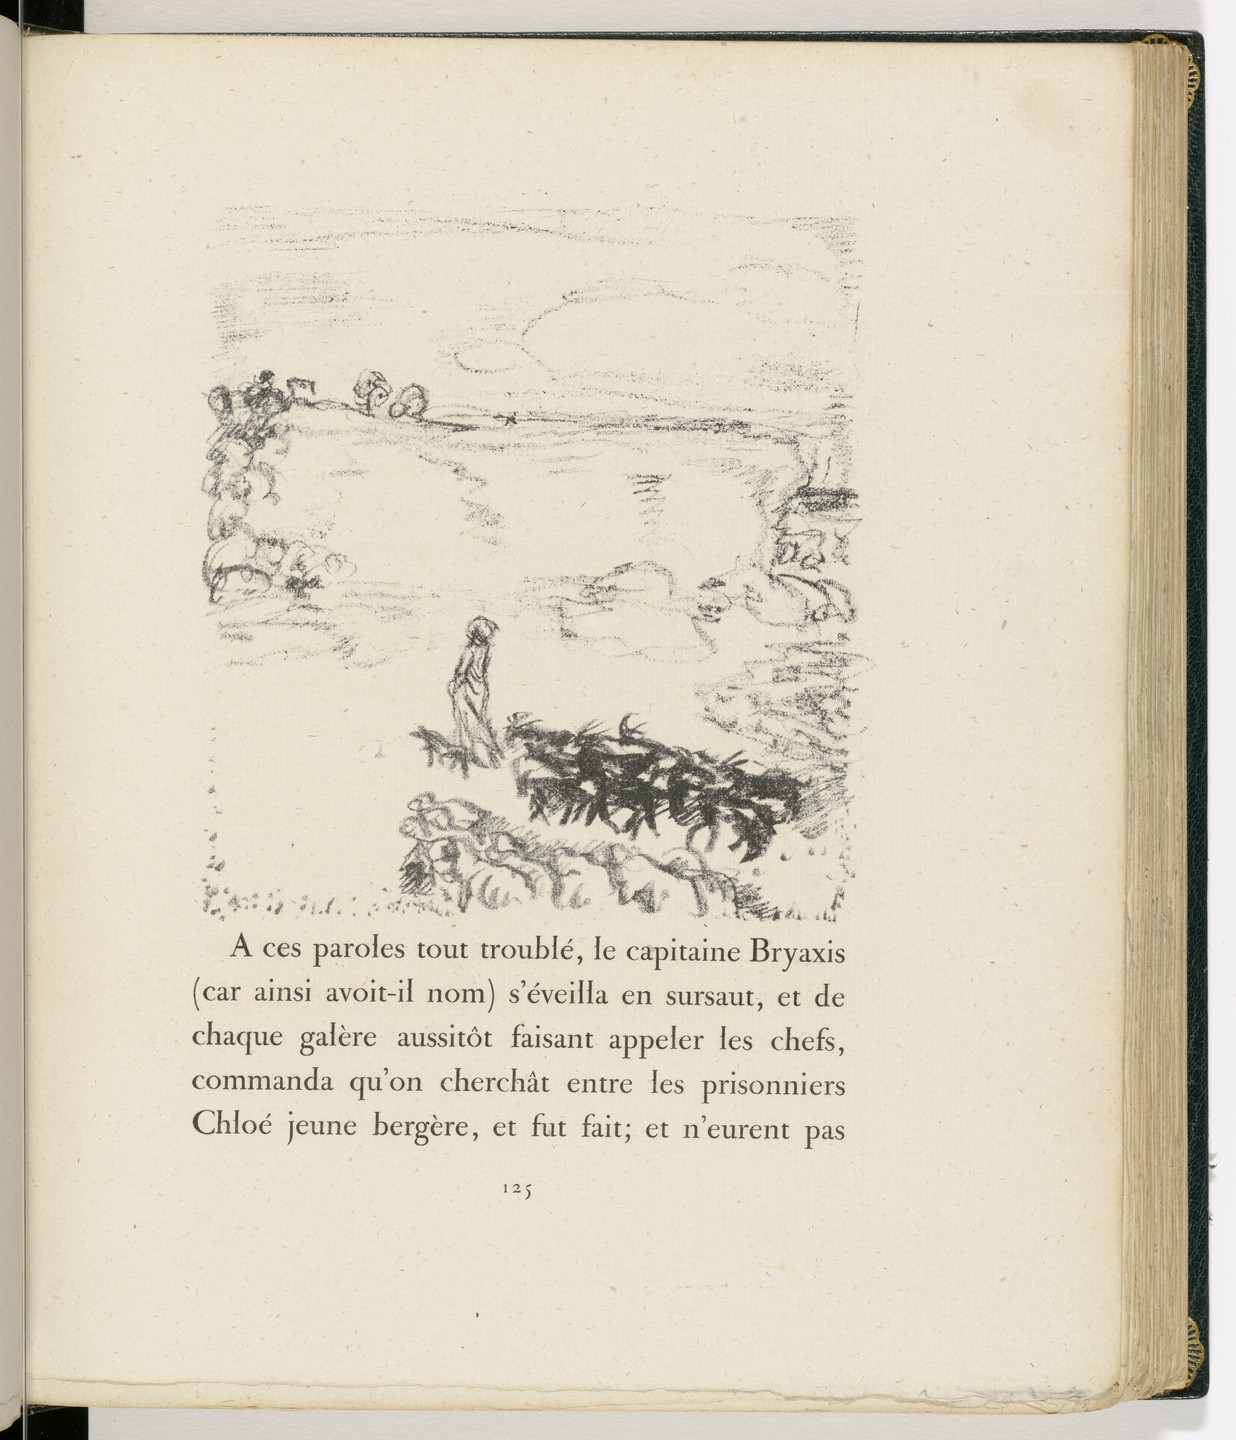 Pierre Bonnard. In-text plate (page 125) from Daphnis et Chloé. 1902